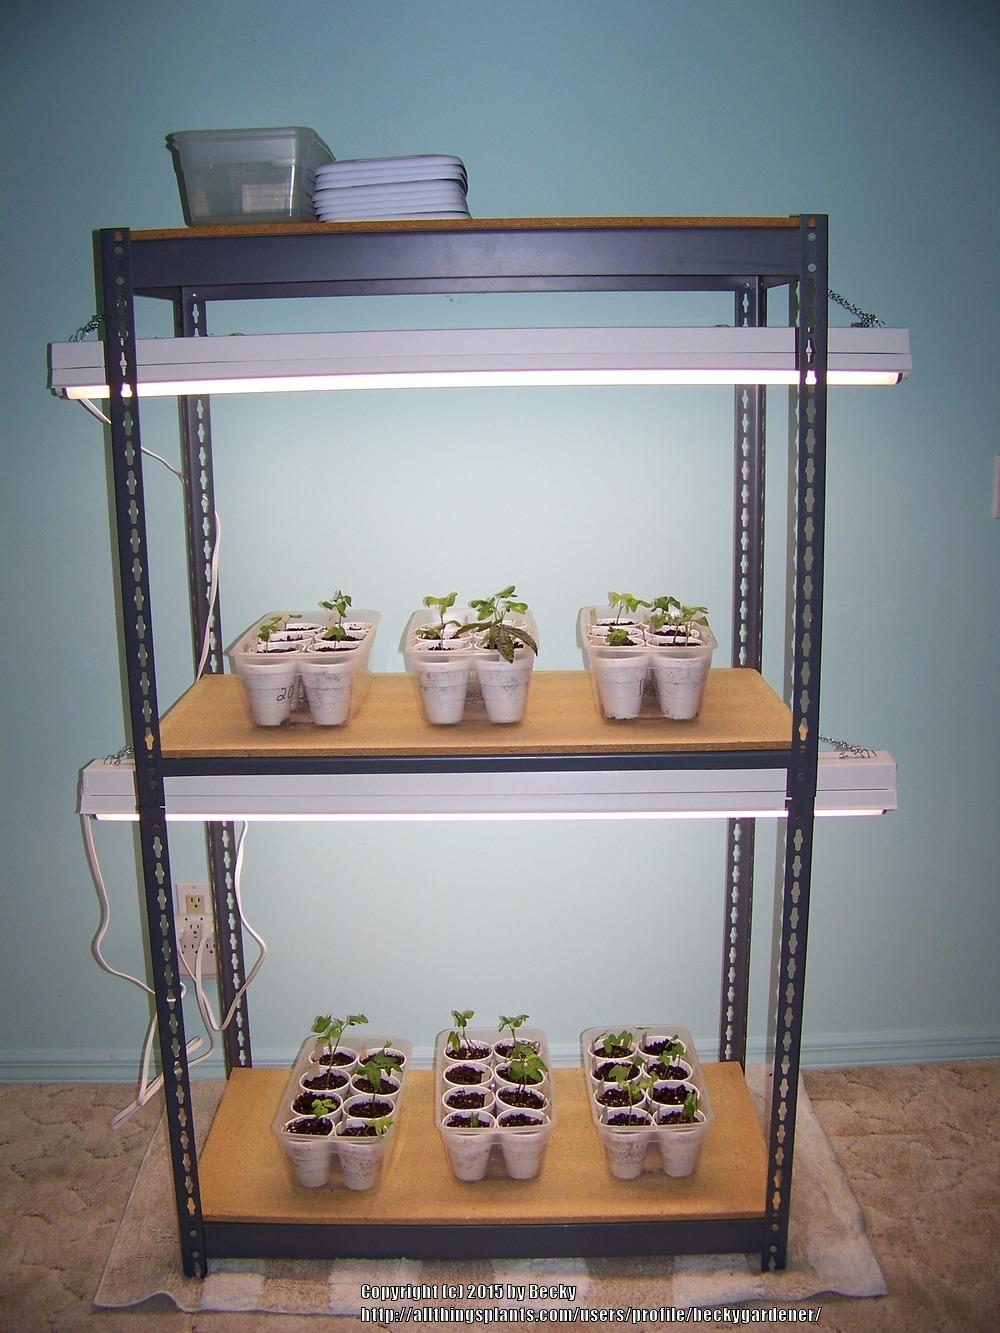 Create Your Own Grow Light Shelving Unit Garden Org